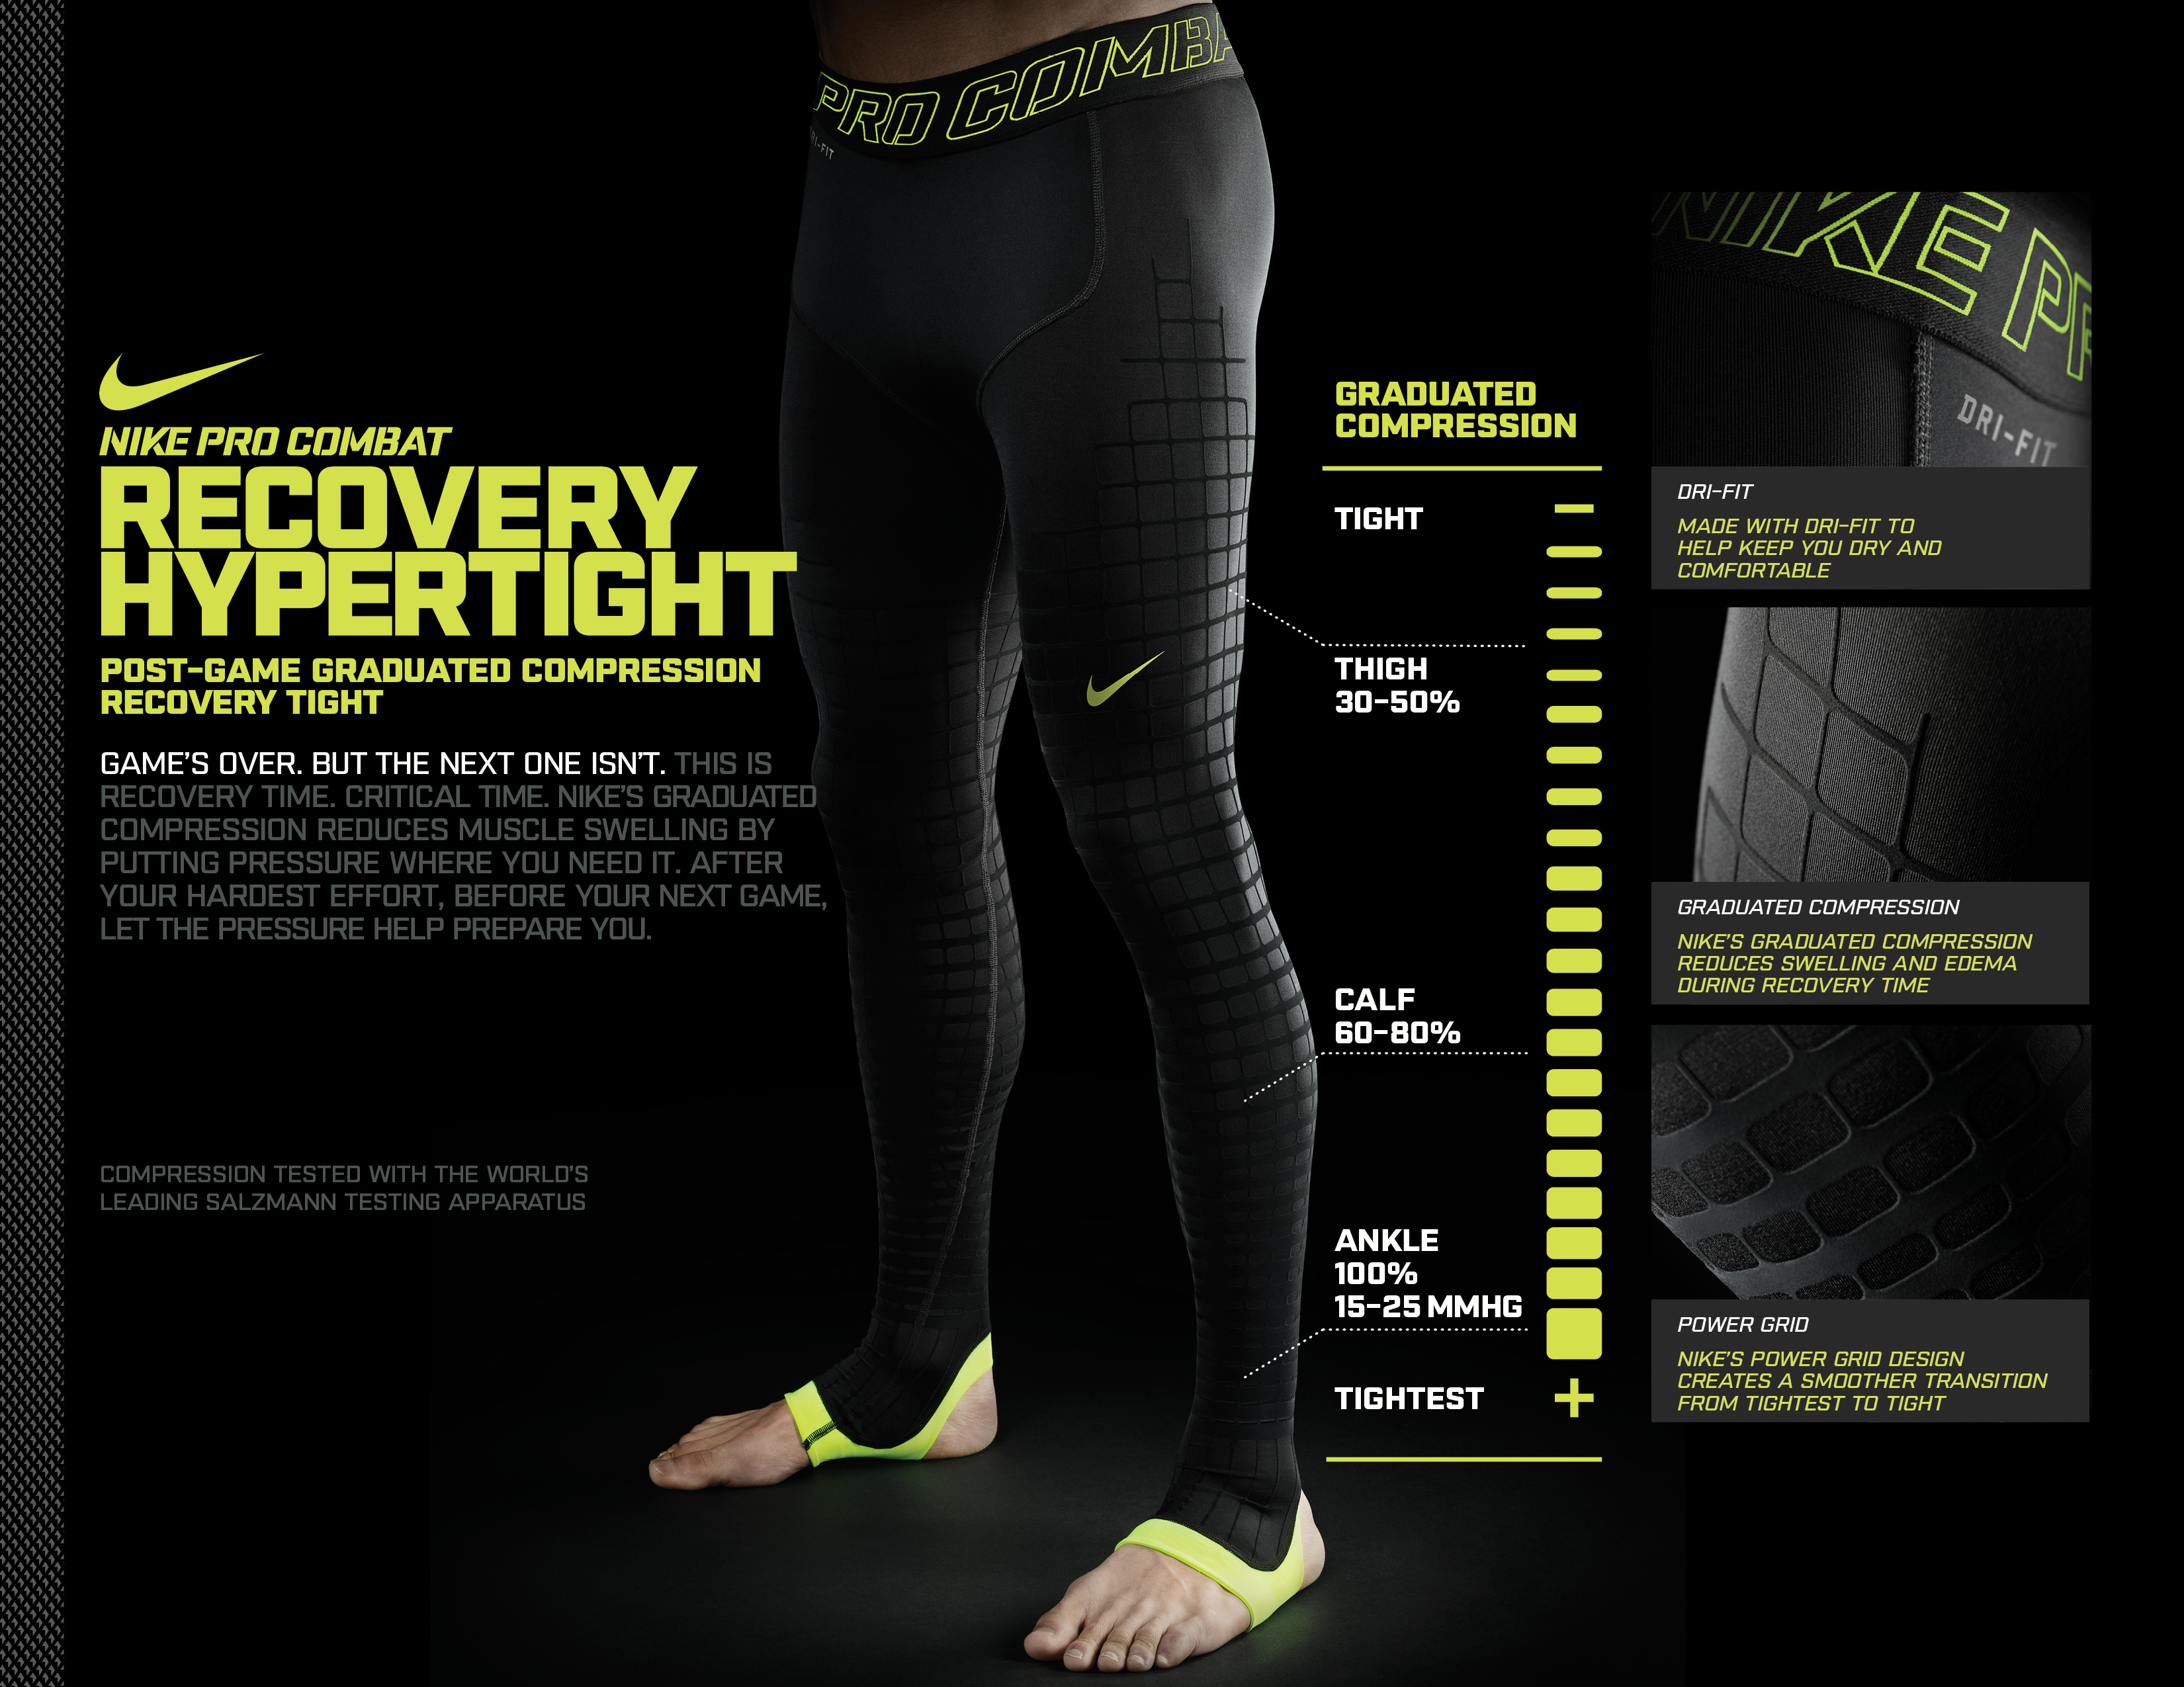 Introducing the Nike Pro Combat Recovery Hypertight - Nike ...